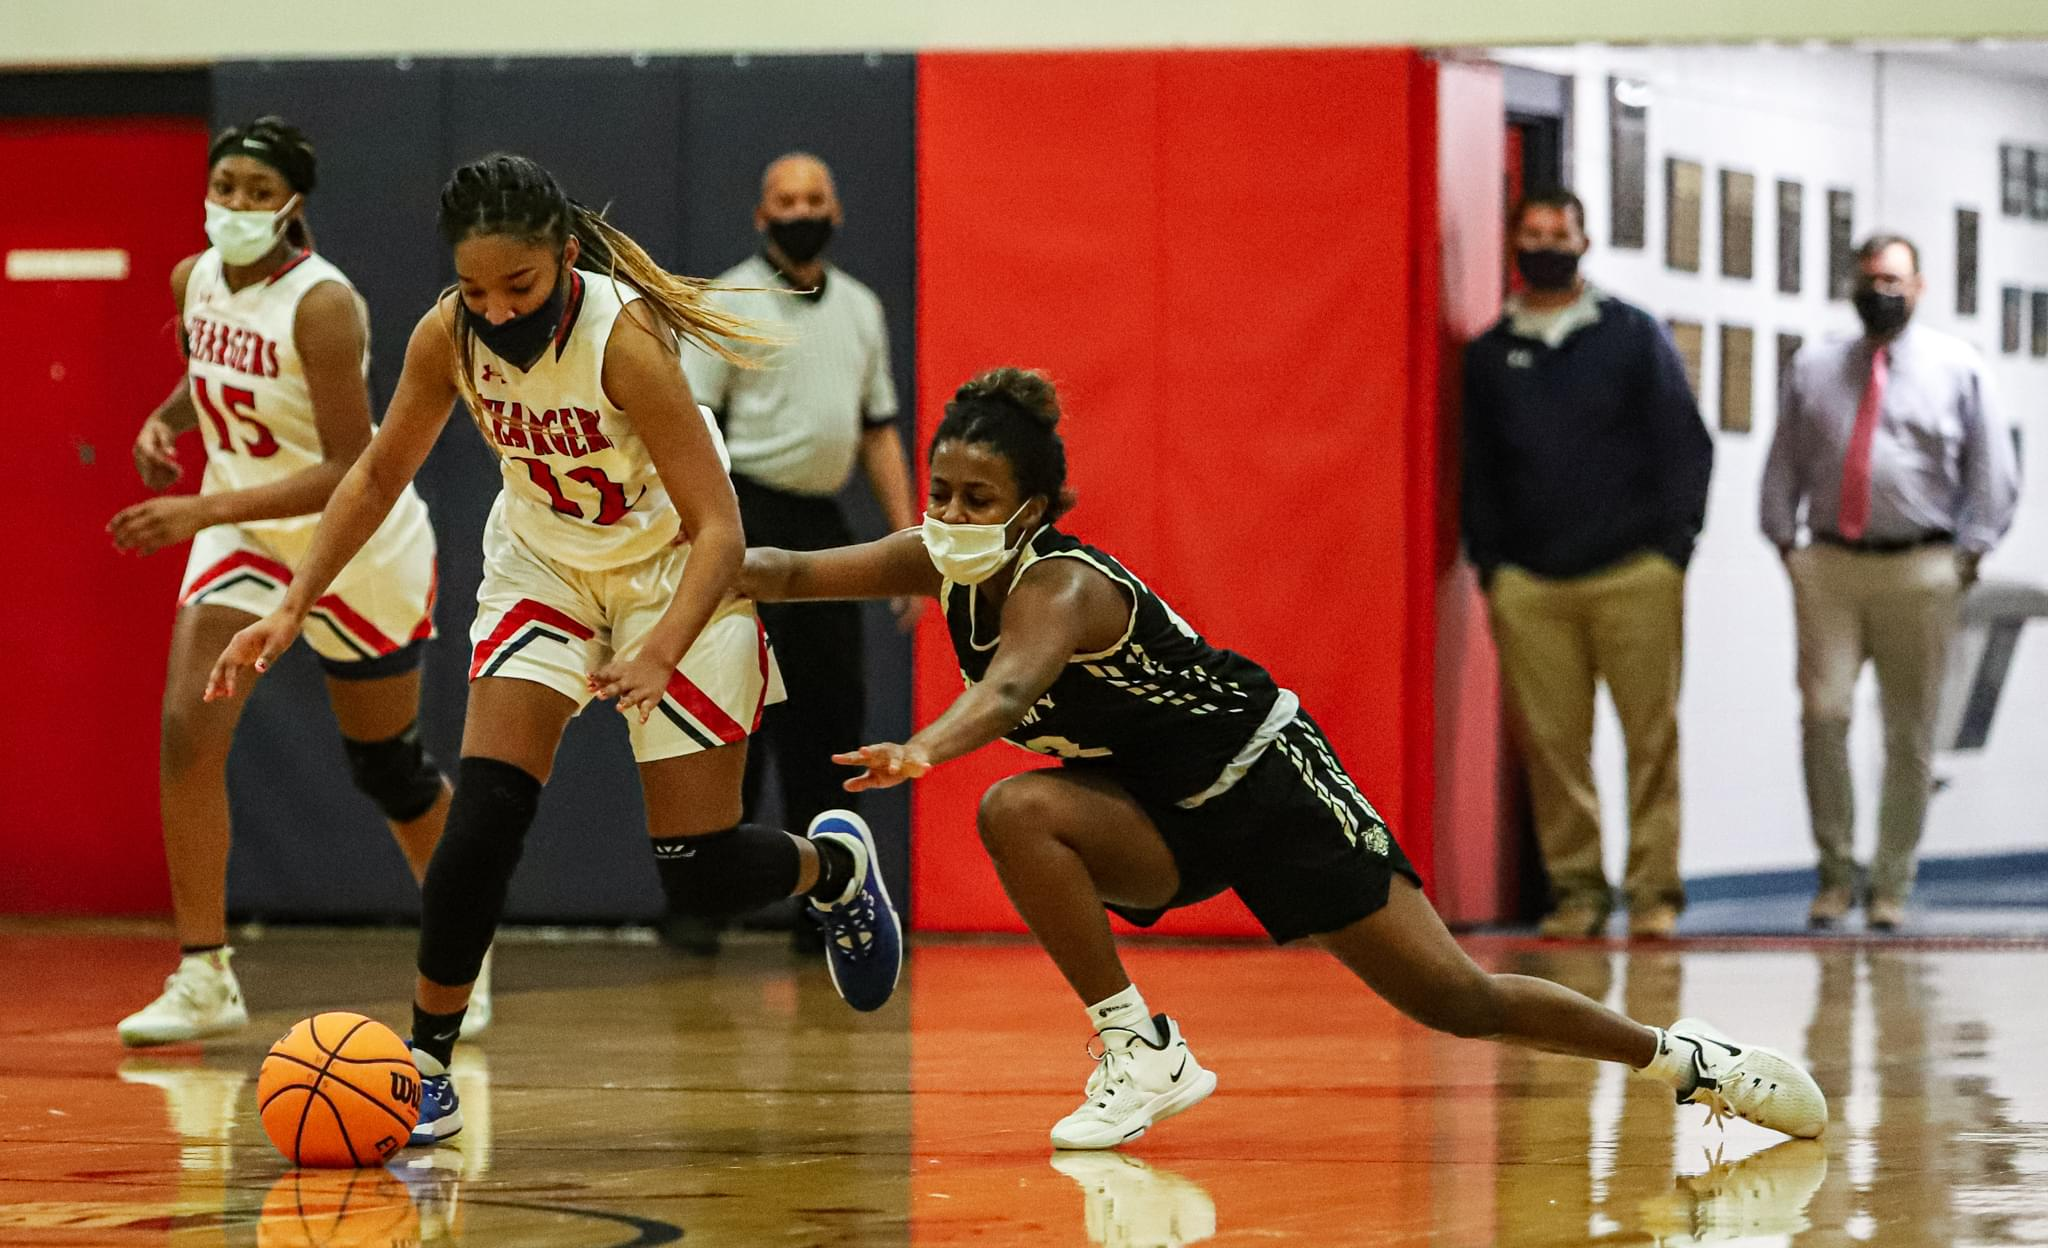 Girls Basketball: WCDS Advances To NCISAA 2A Quarterfinals (PHOTO GALLERY)